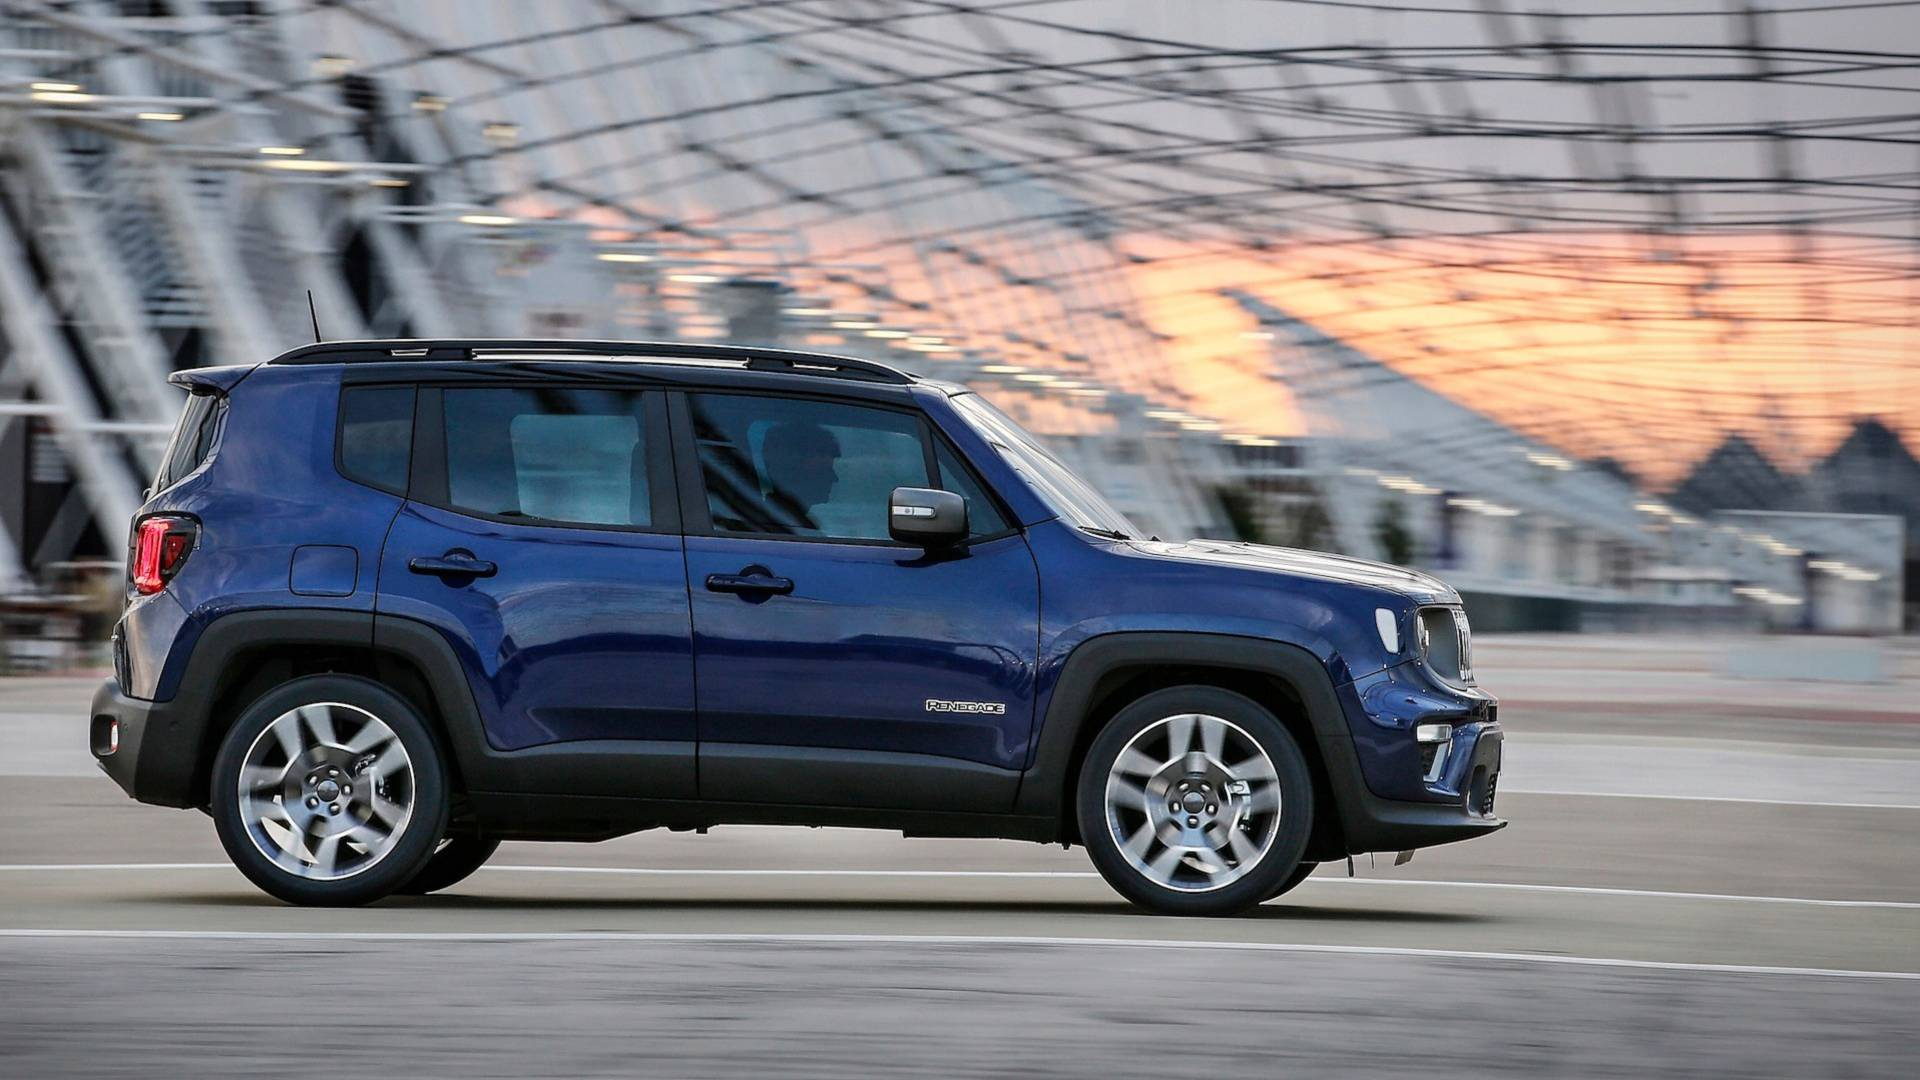 Jeep Renegade Facelift 2018 >> 2019 Jeep Renegade Going On Sale In Europe In September - autoevolution